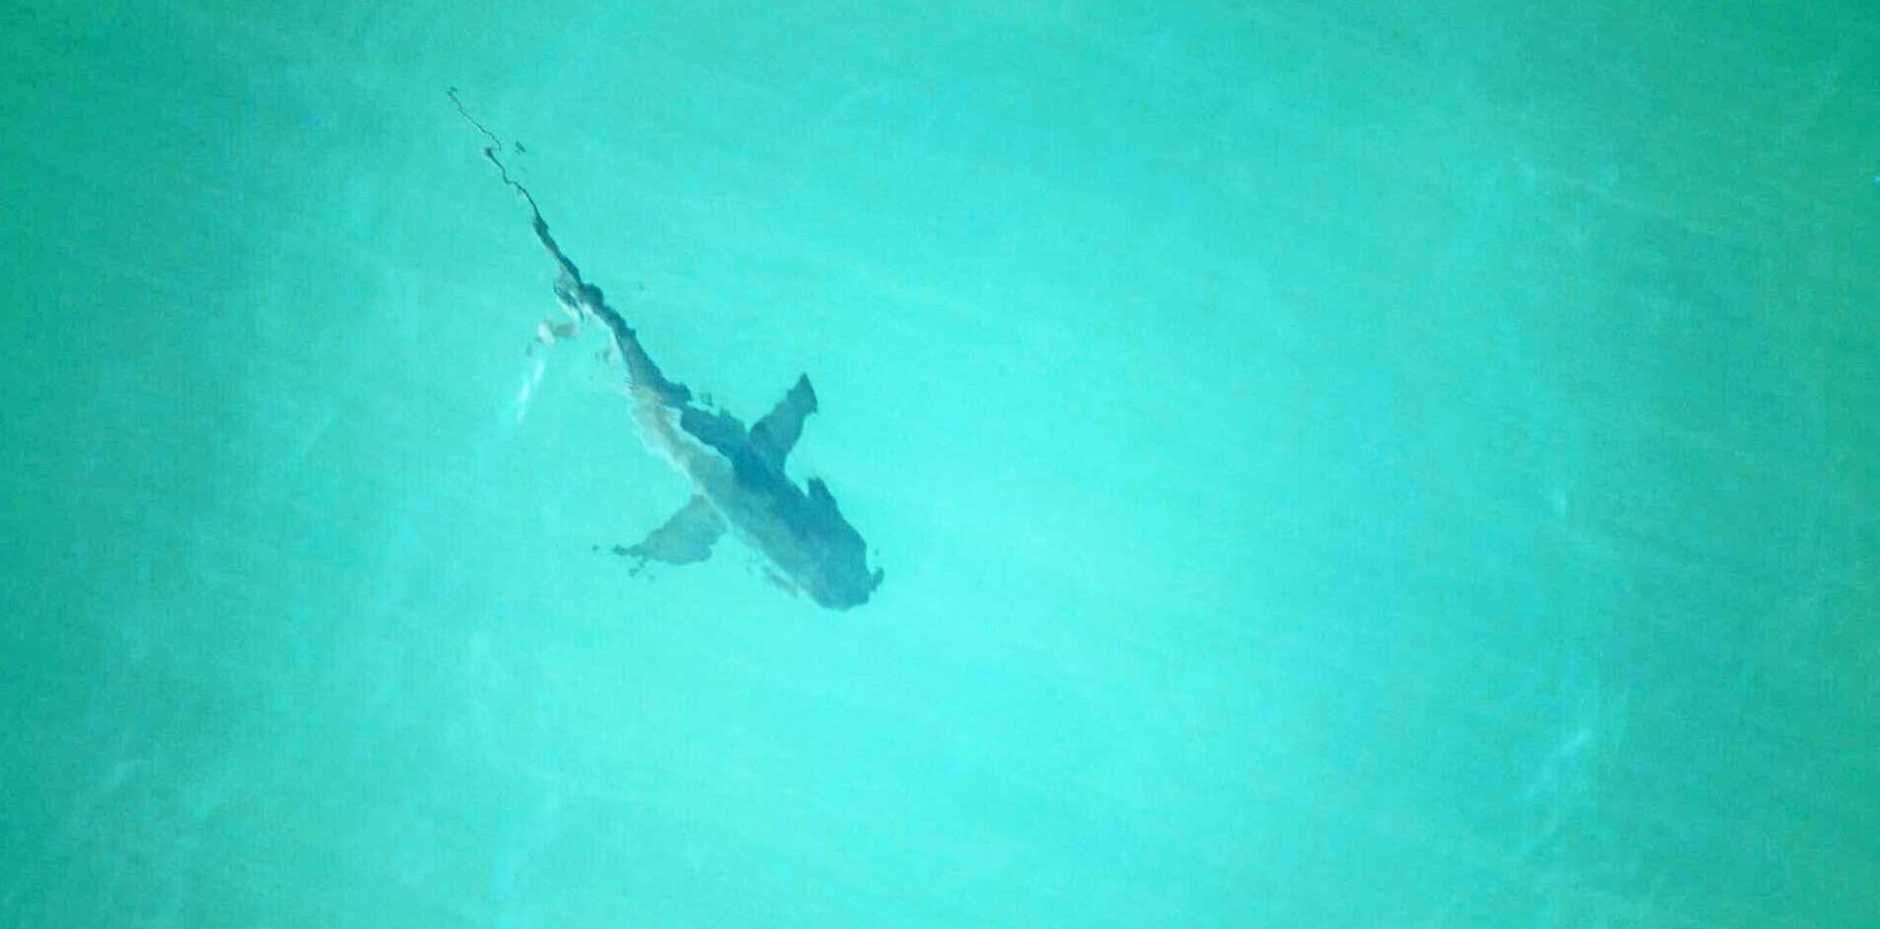 FILE PHOTO: A stand up paddle boarder says he was bitten by a shark off Pelican Waters this morning.